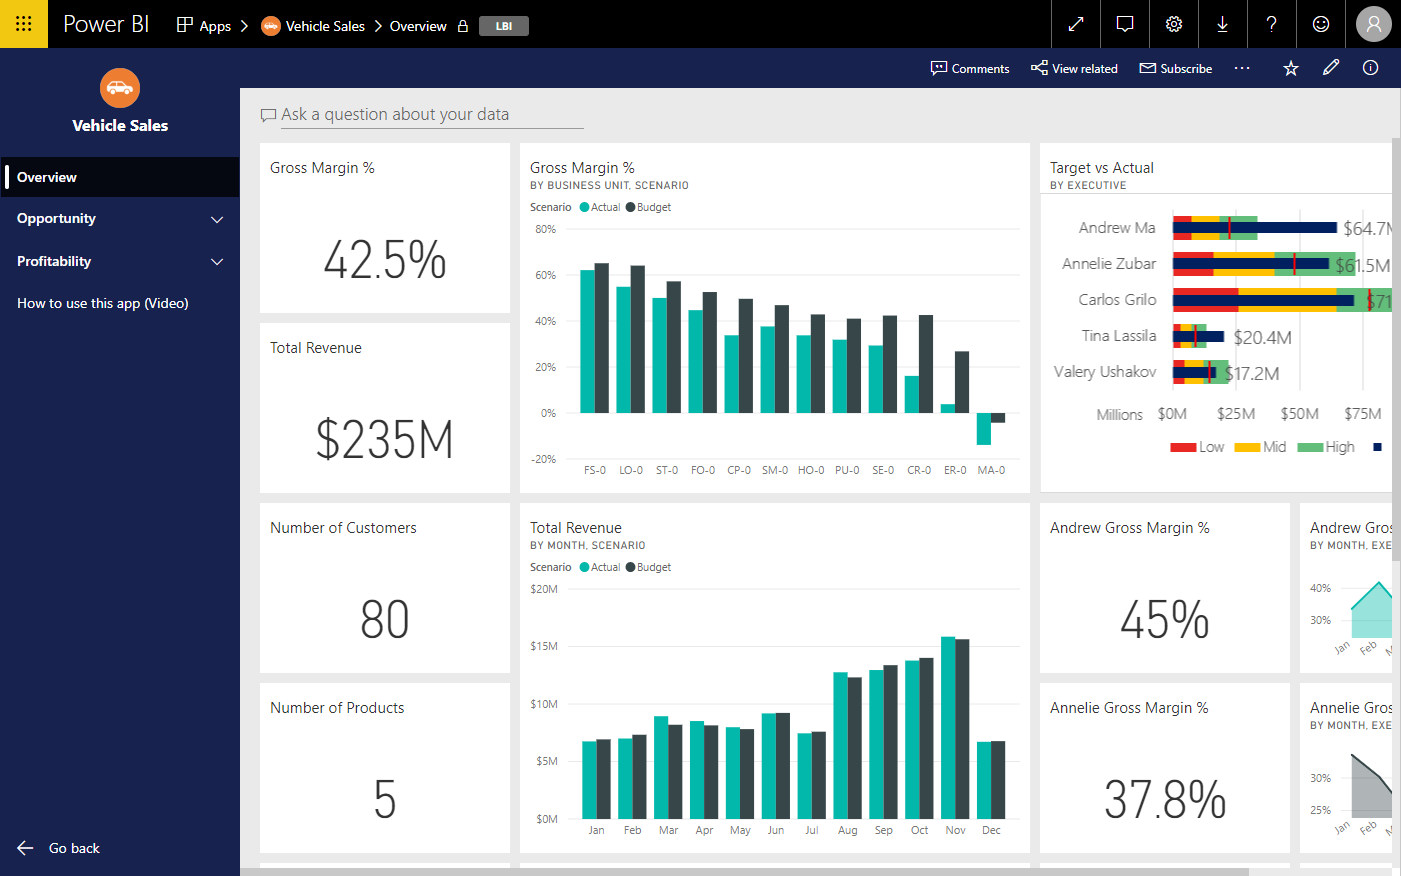 Image of the default experience when a user consumes a Power BI app with the new navigation